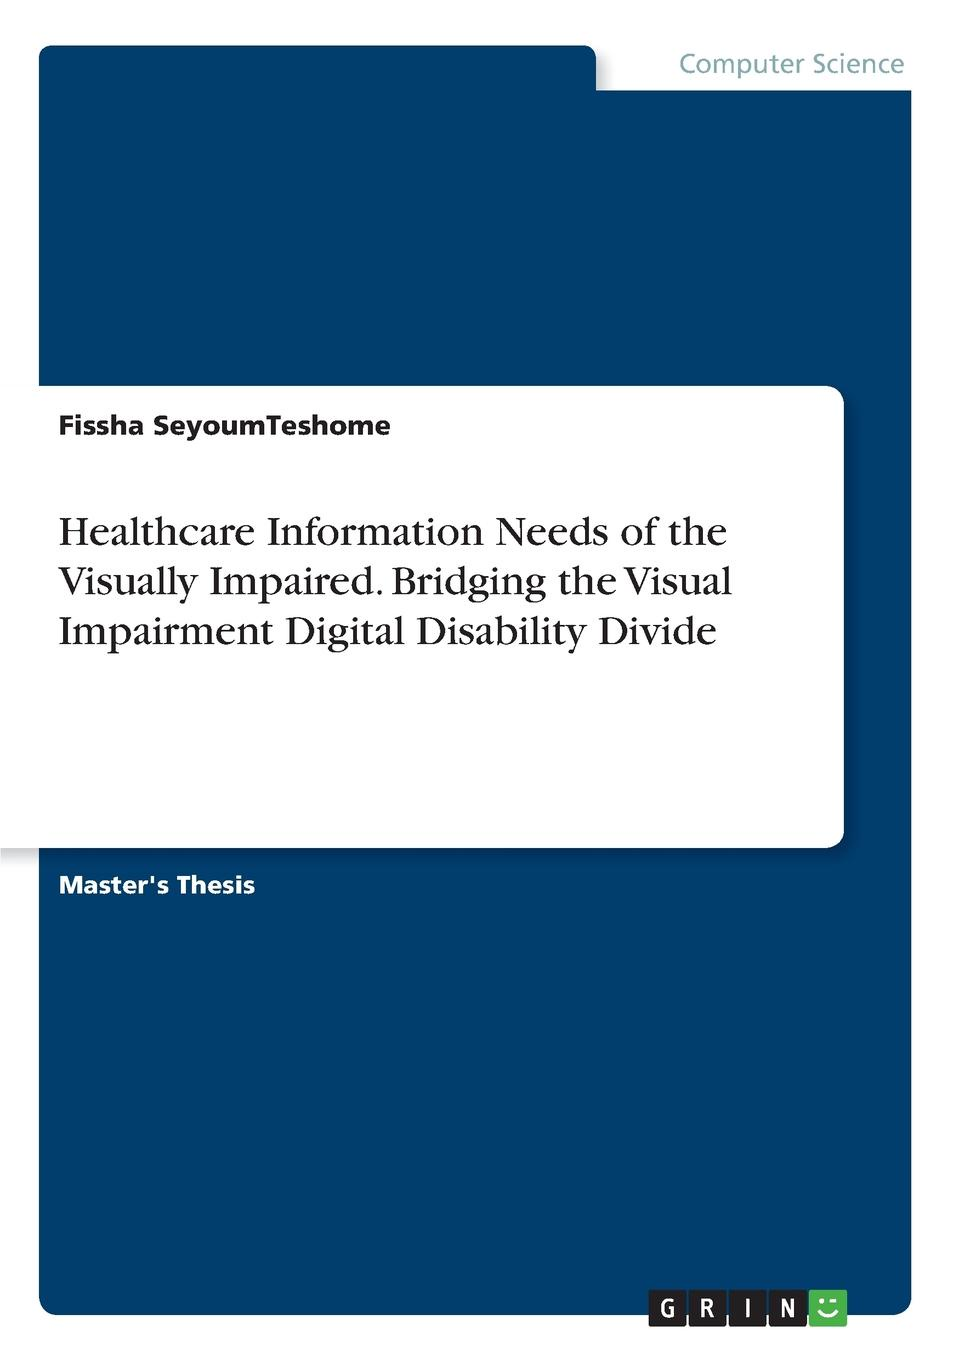 Fissha SeyoumTeshome Healthcare Information Needs of the Visually Impaired. Bridging the Visual Impairment Digital Disability Divide недорго, оригинальная цена